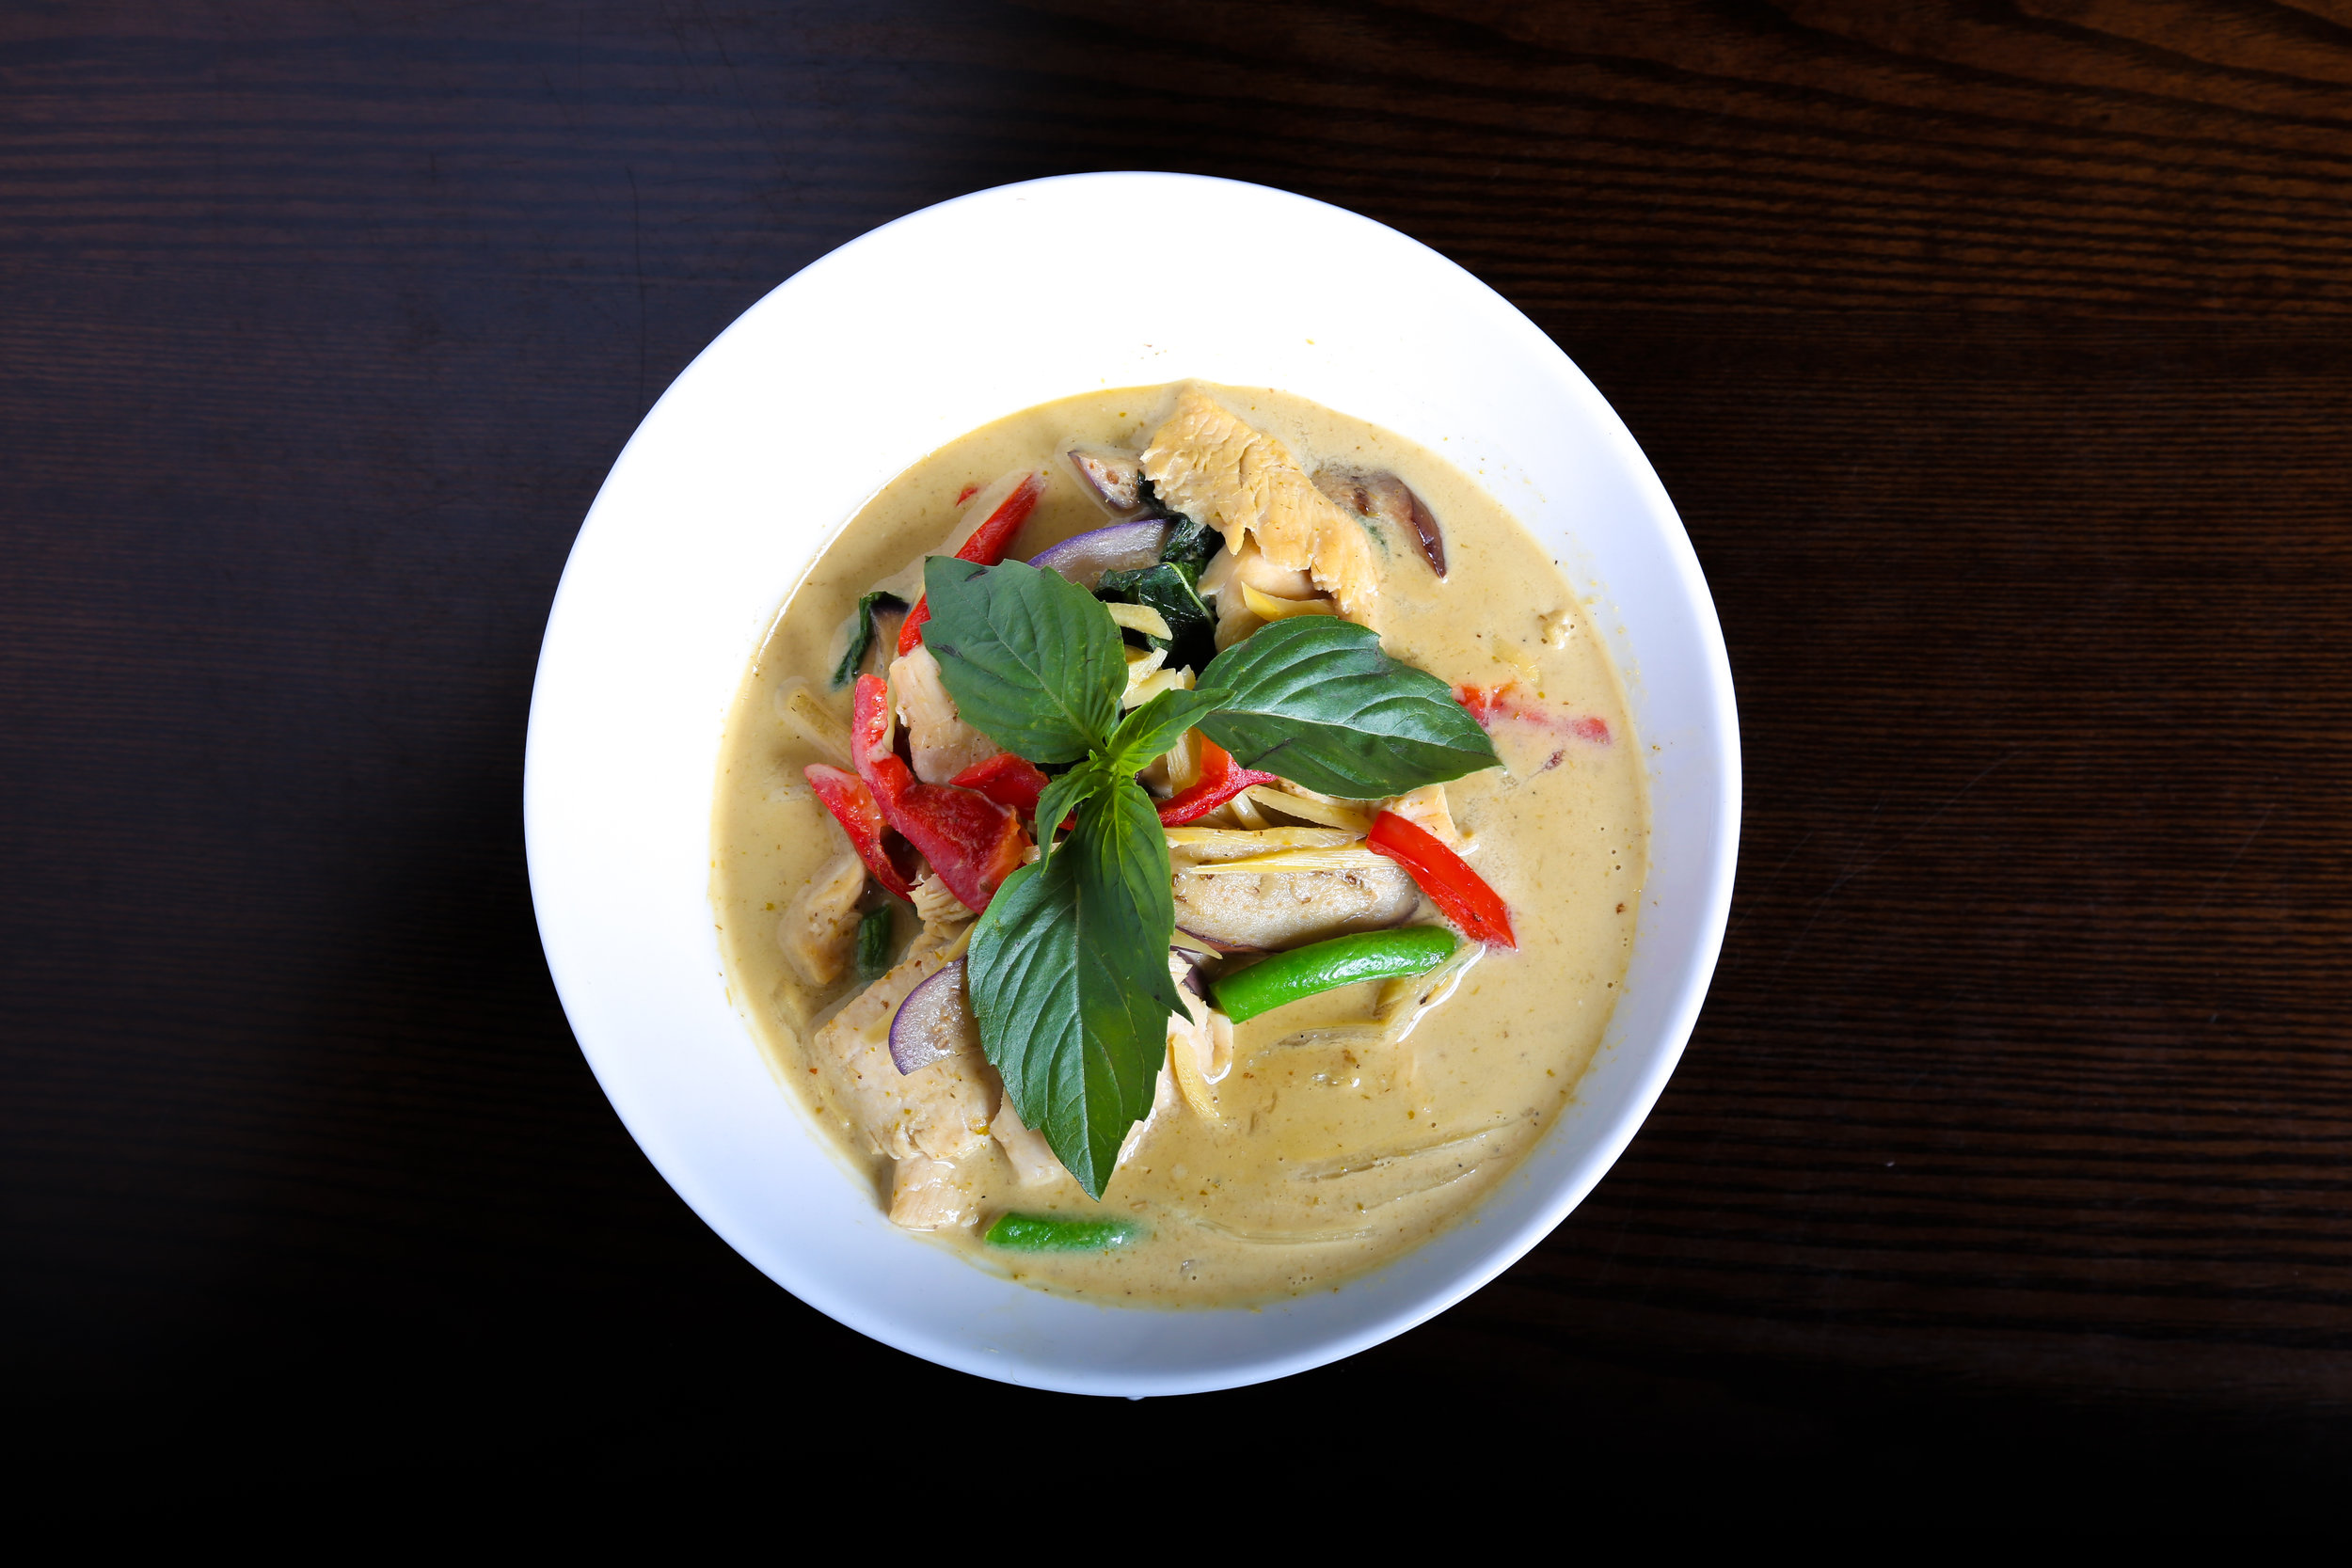 Green Curry - Coconut milk, bamboo shoots, eggplant, bell pepper, string bean and basil.